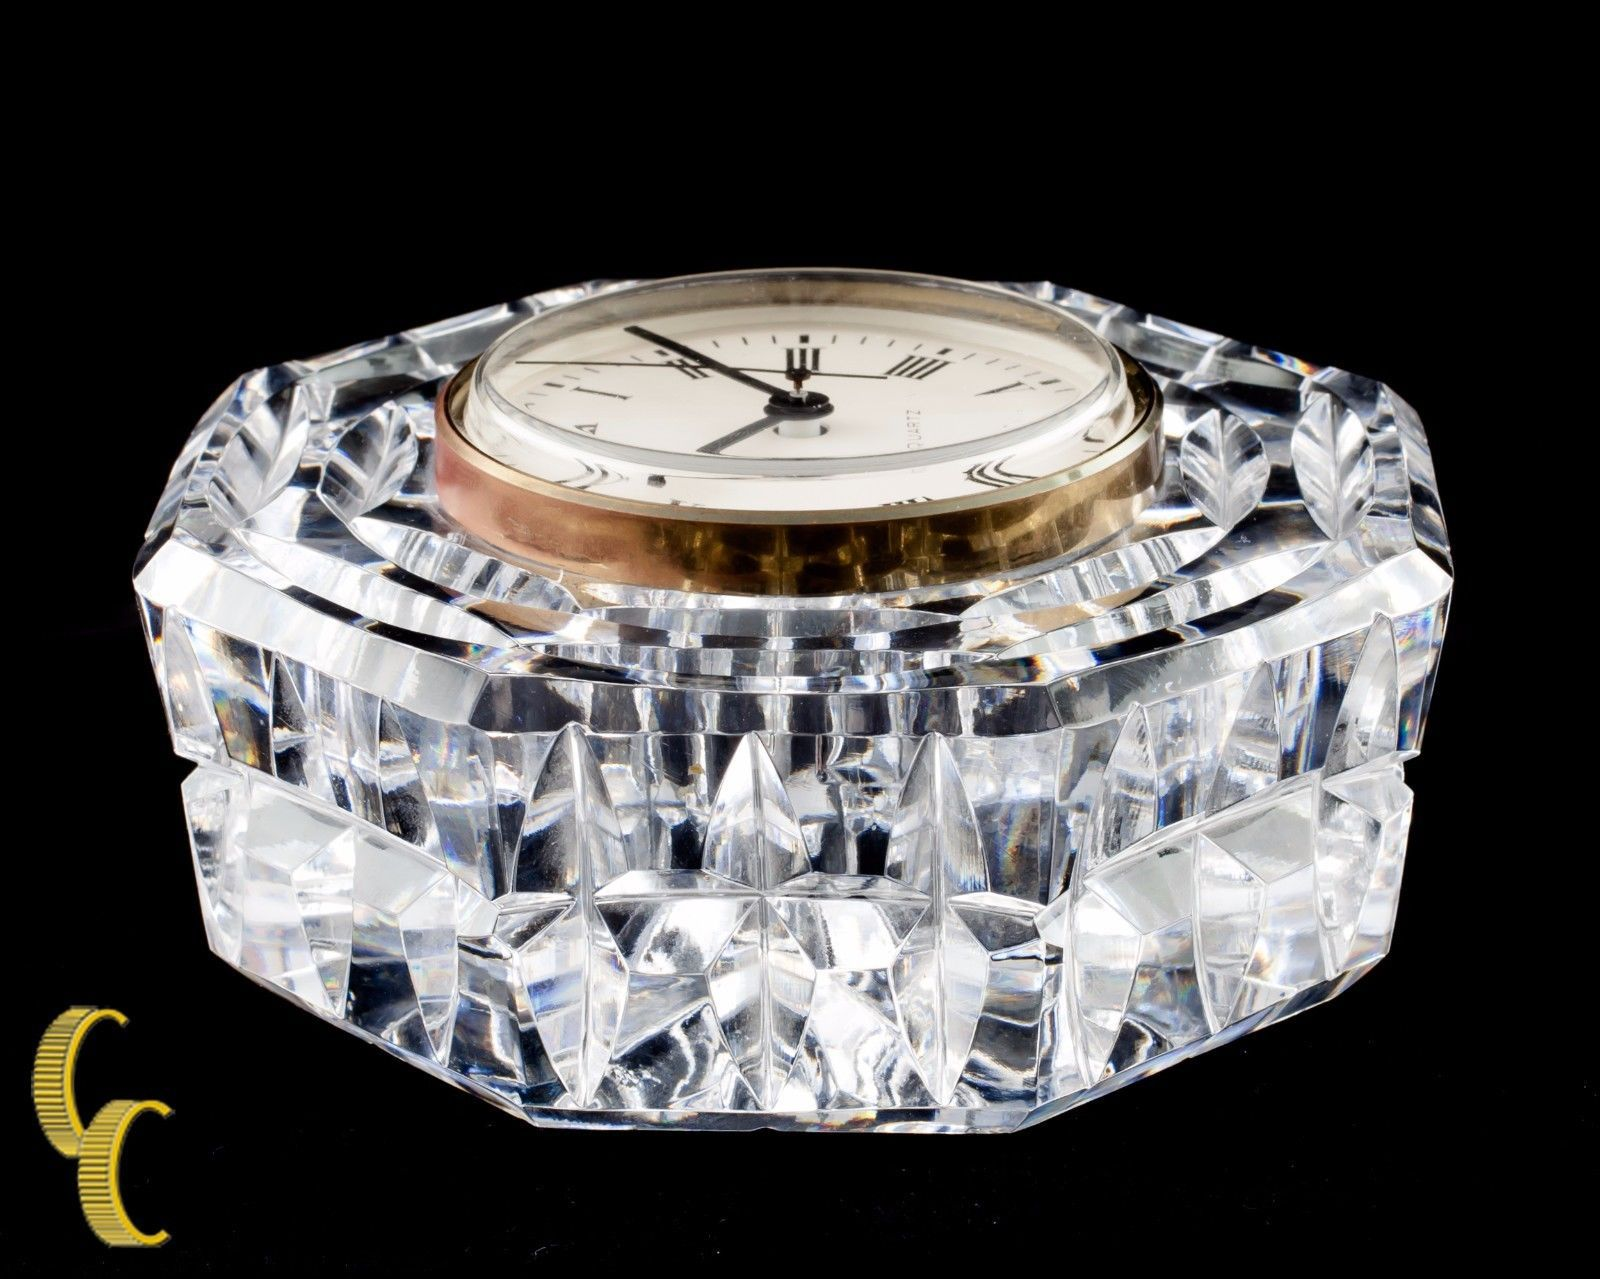 Primary image for Waterford Crystal Octogon Quartz Mantle Clock Nice!